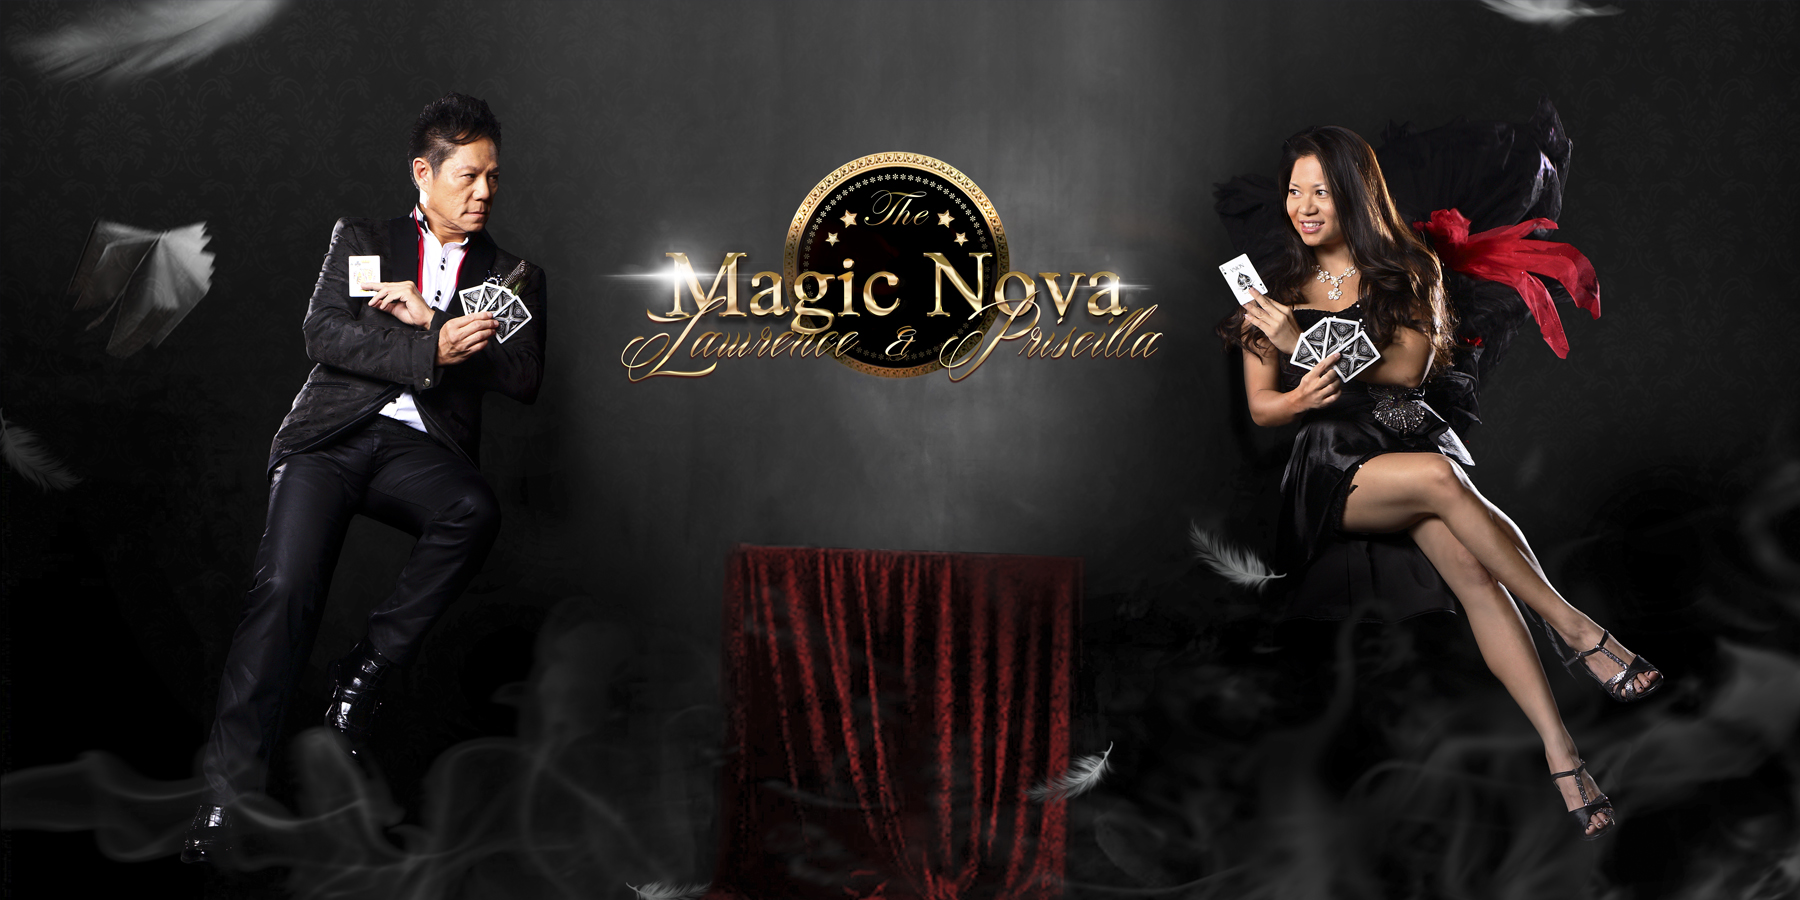 a visit to a magic show Congratulations you've found the top birthday party magician in northern virginia voted 2018 best magic show for kids face painting & balloon artists.